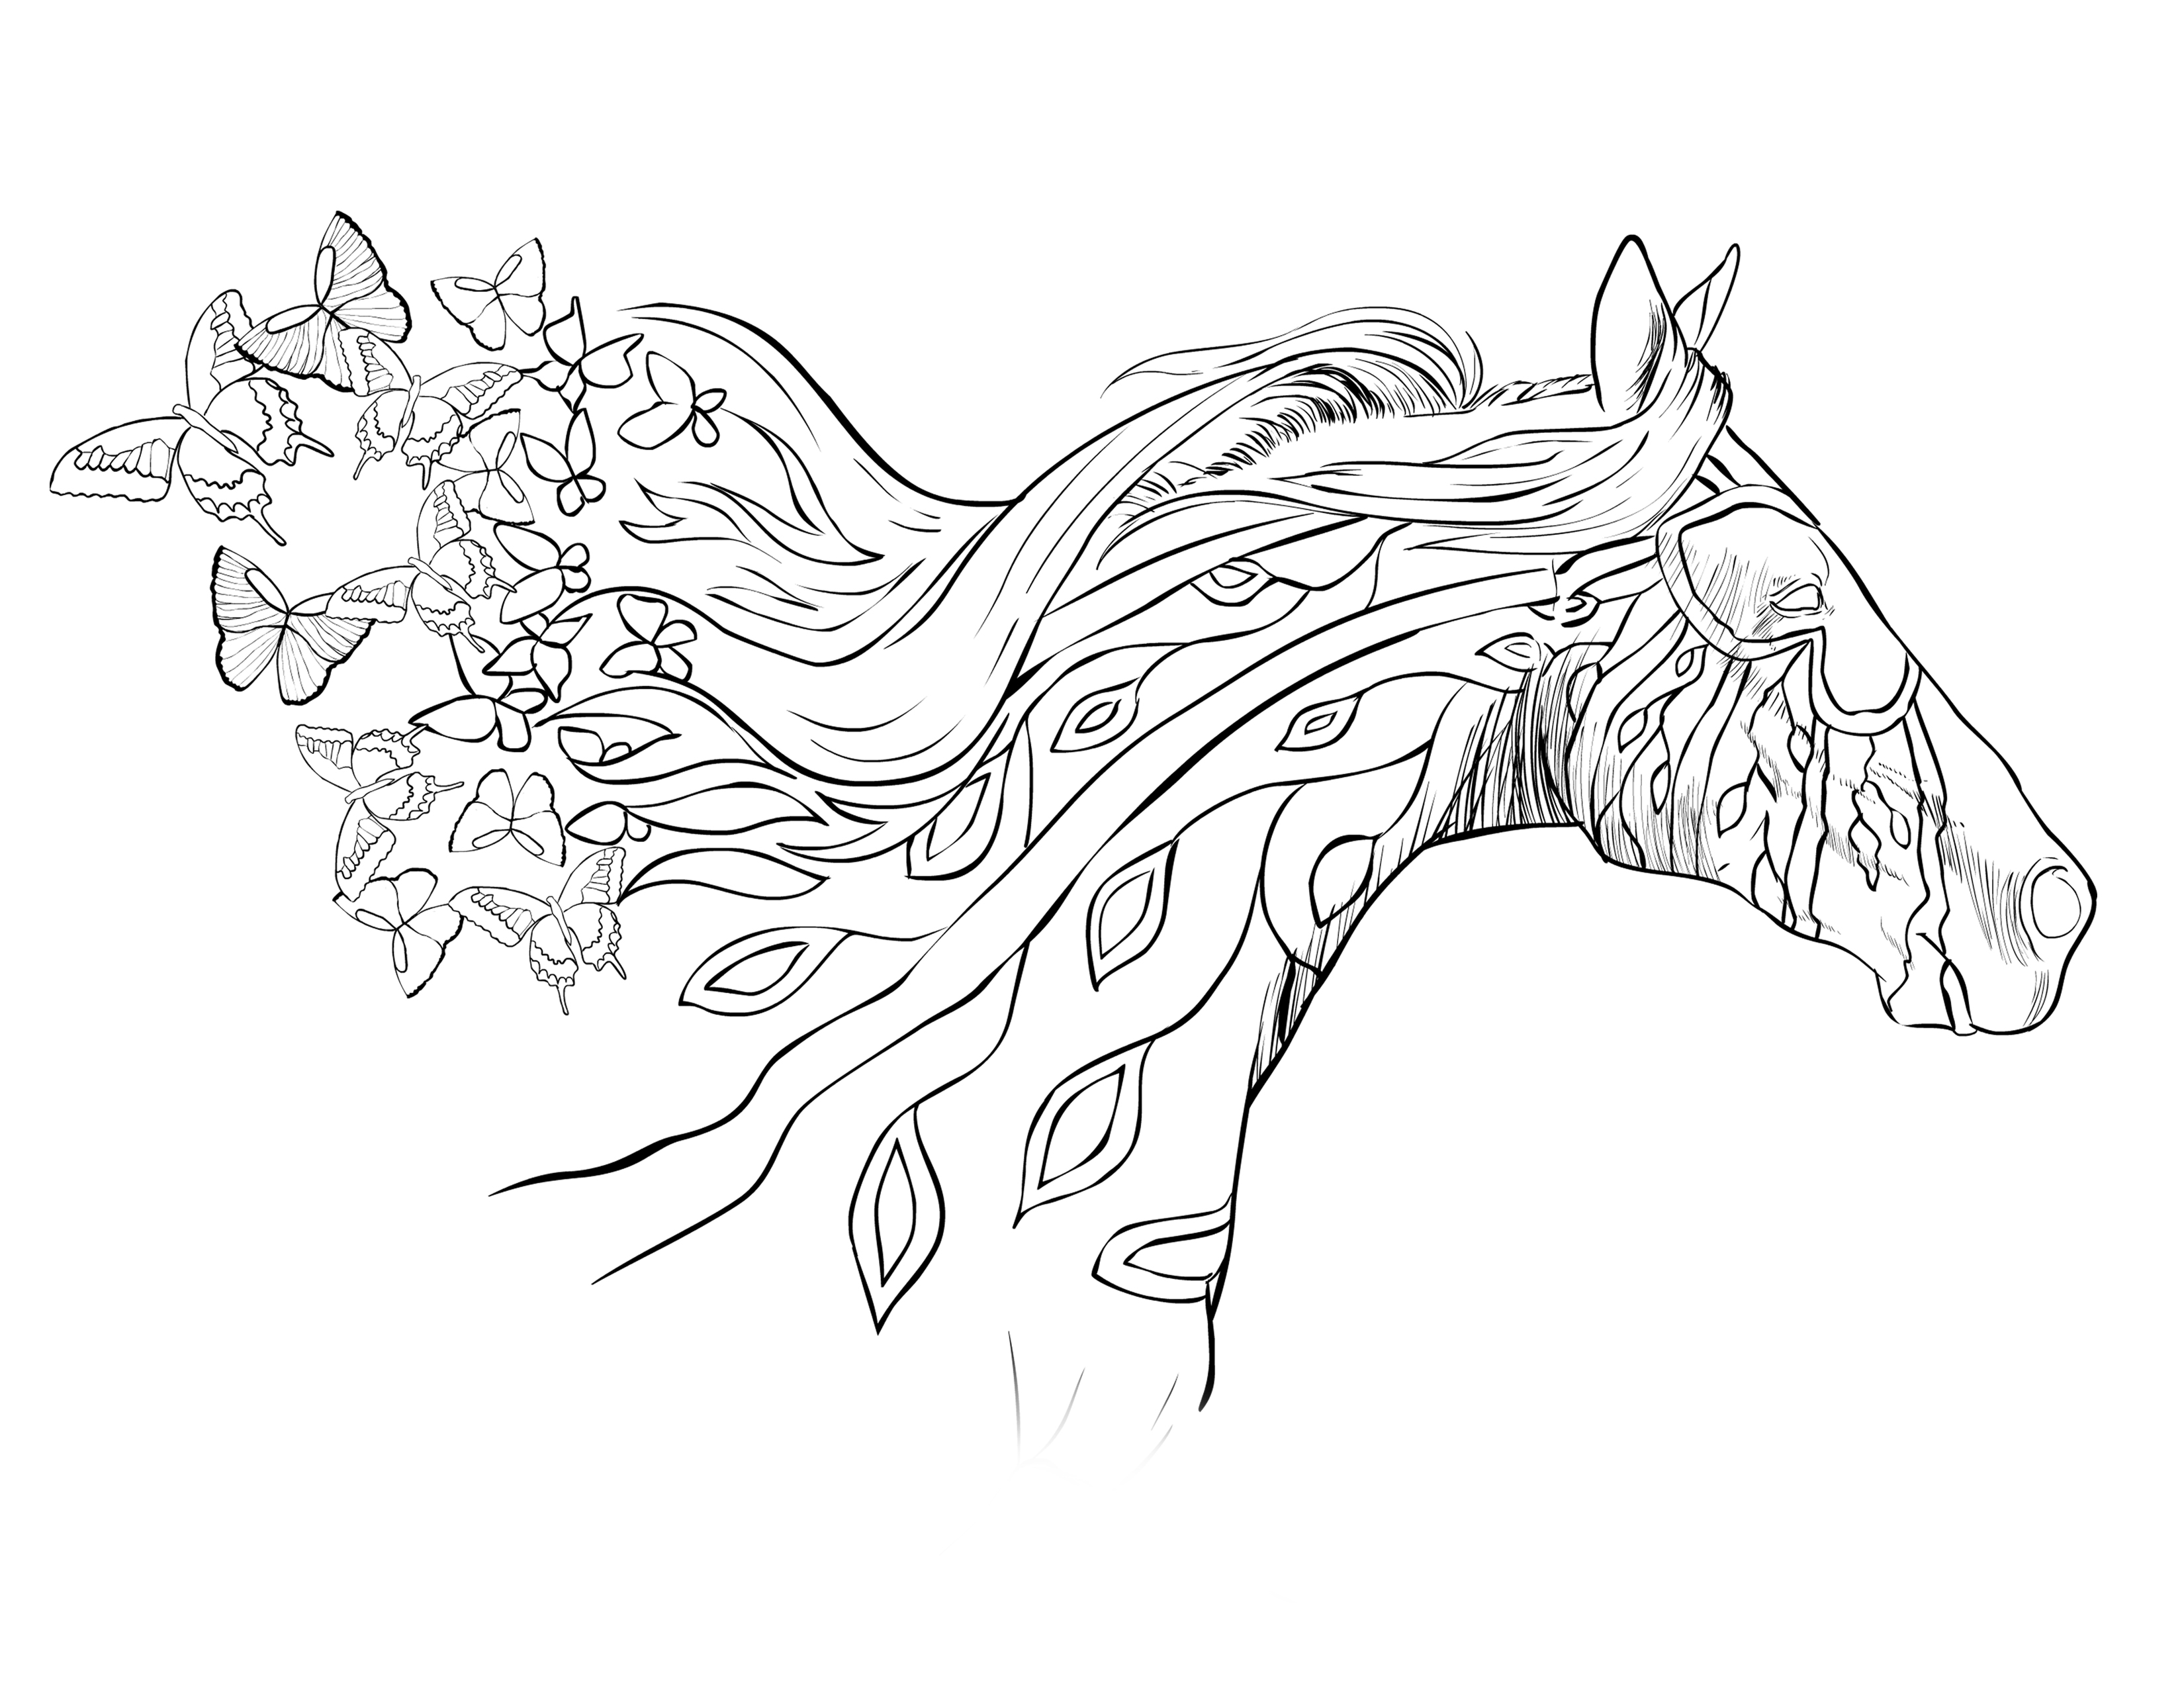 3300x2550 Horse Coloring Pages For Adults Running With The Wind